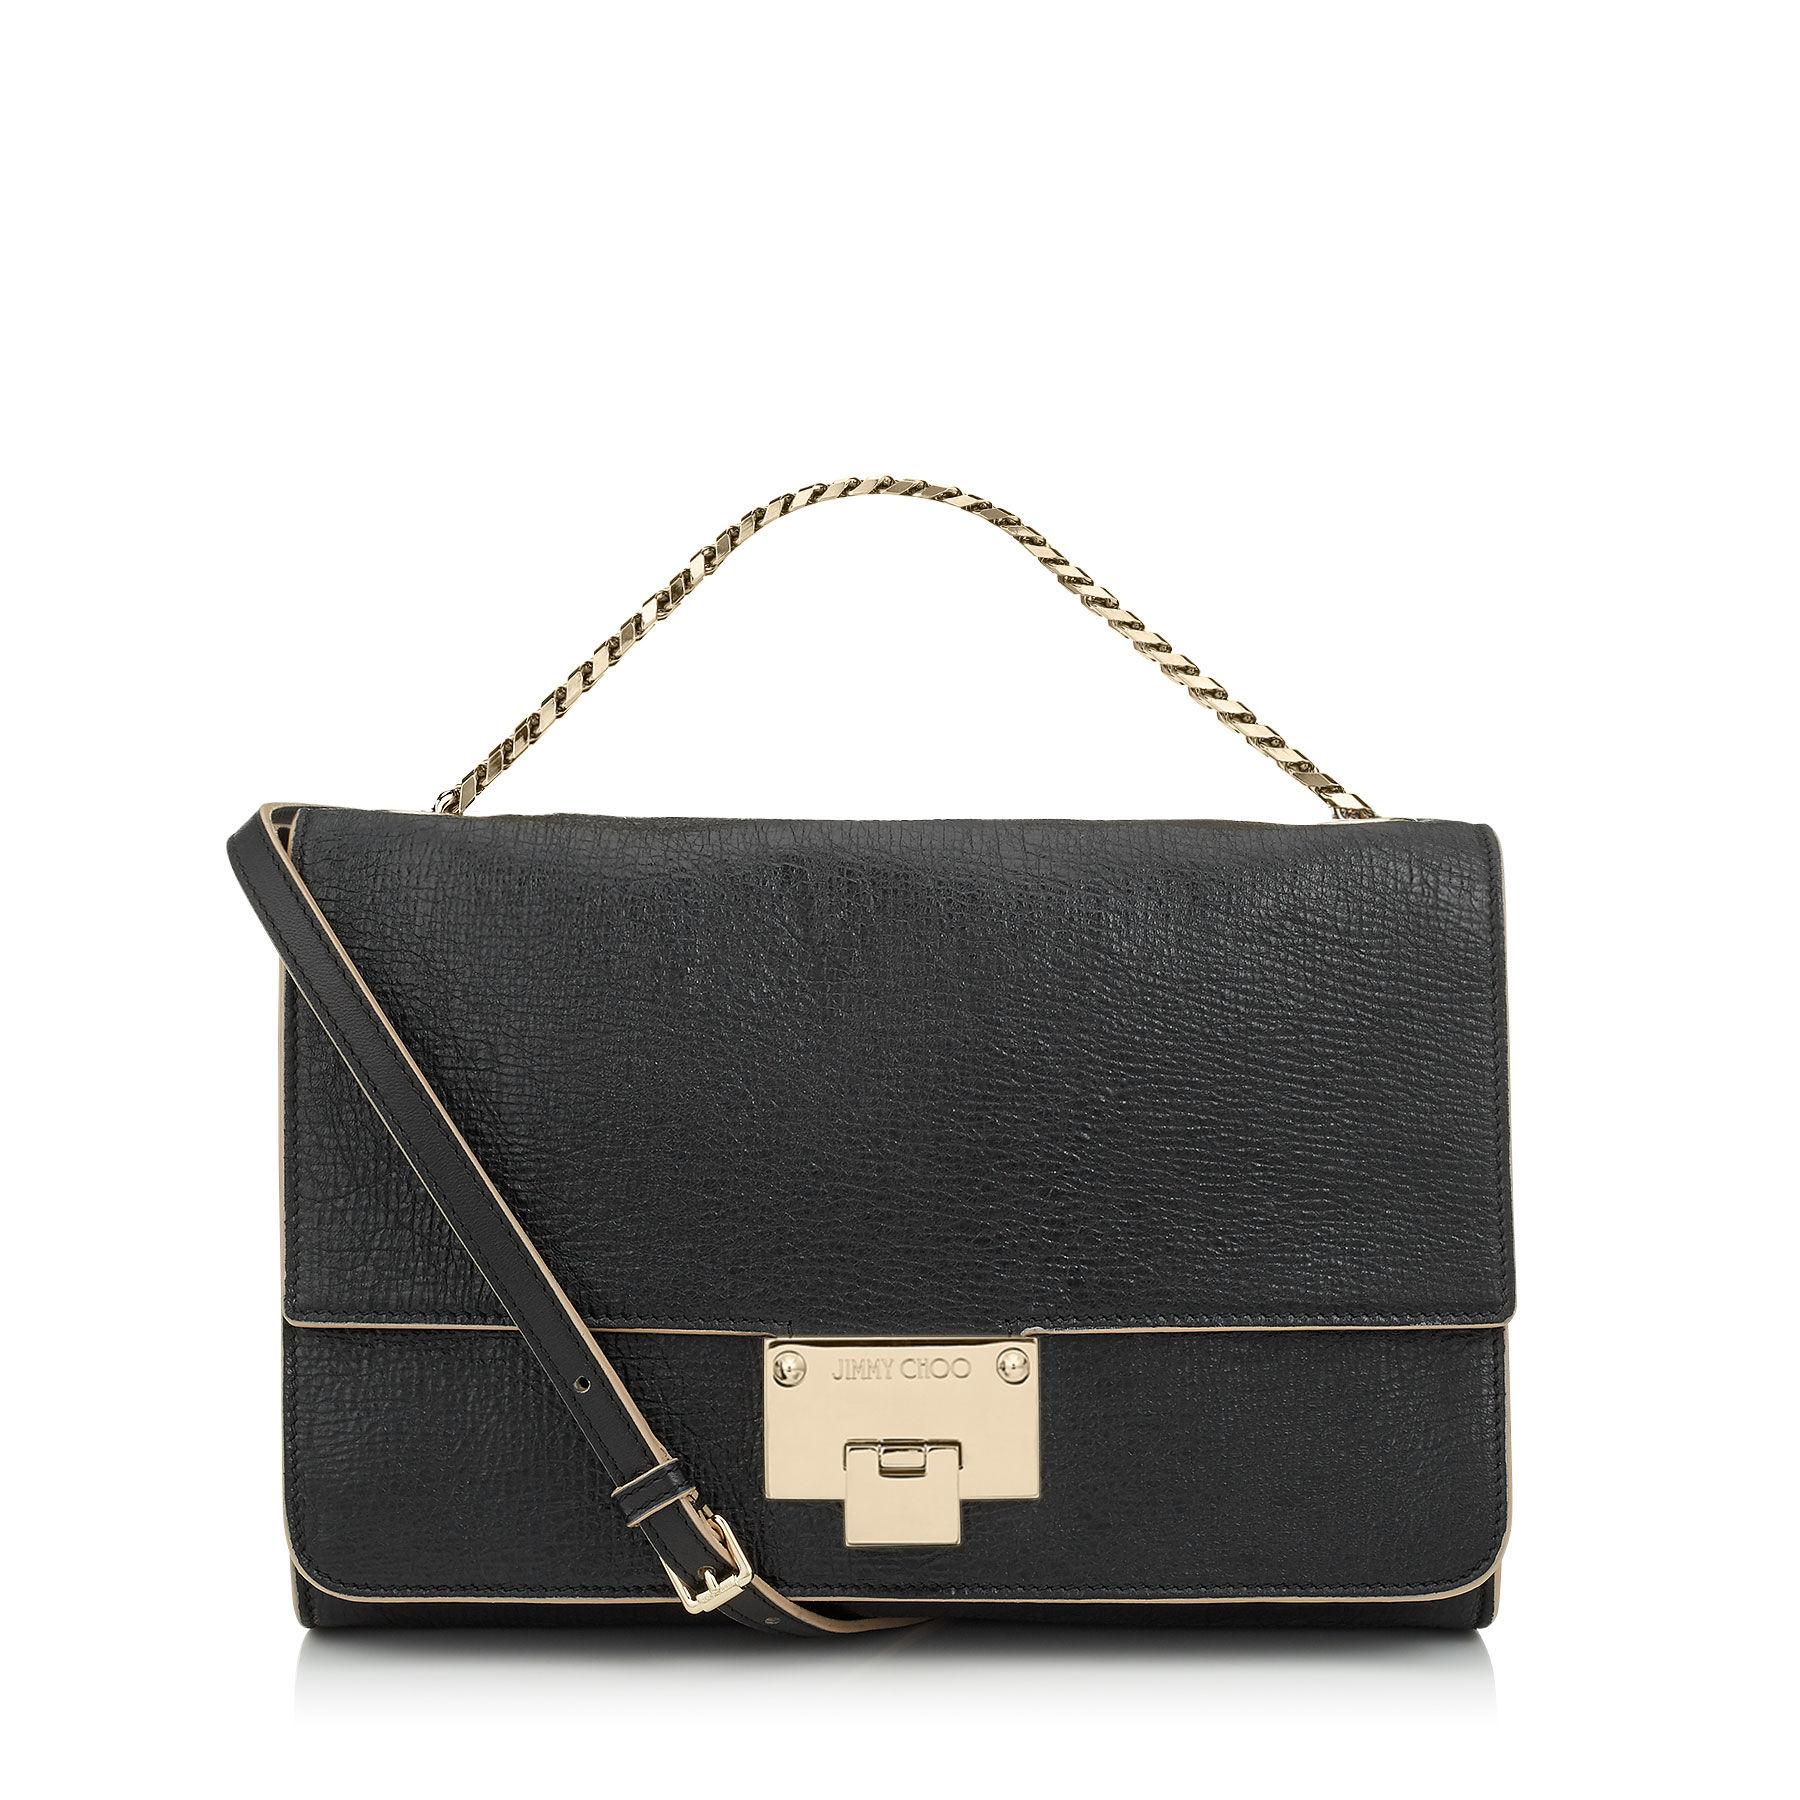 b3f407e6cc Jimmy Choo Rebel Soft/s Black Washed Crinkled Leather Shoulder Bag ...